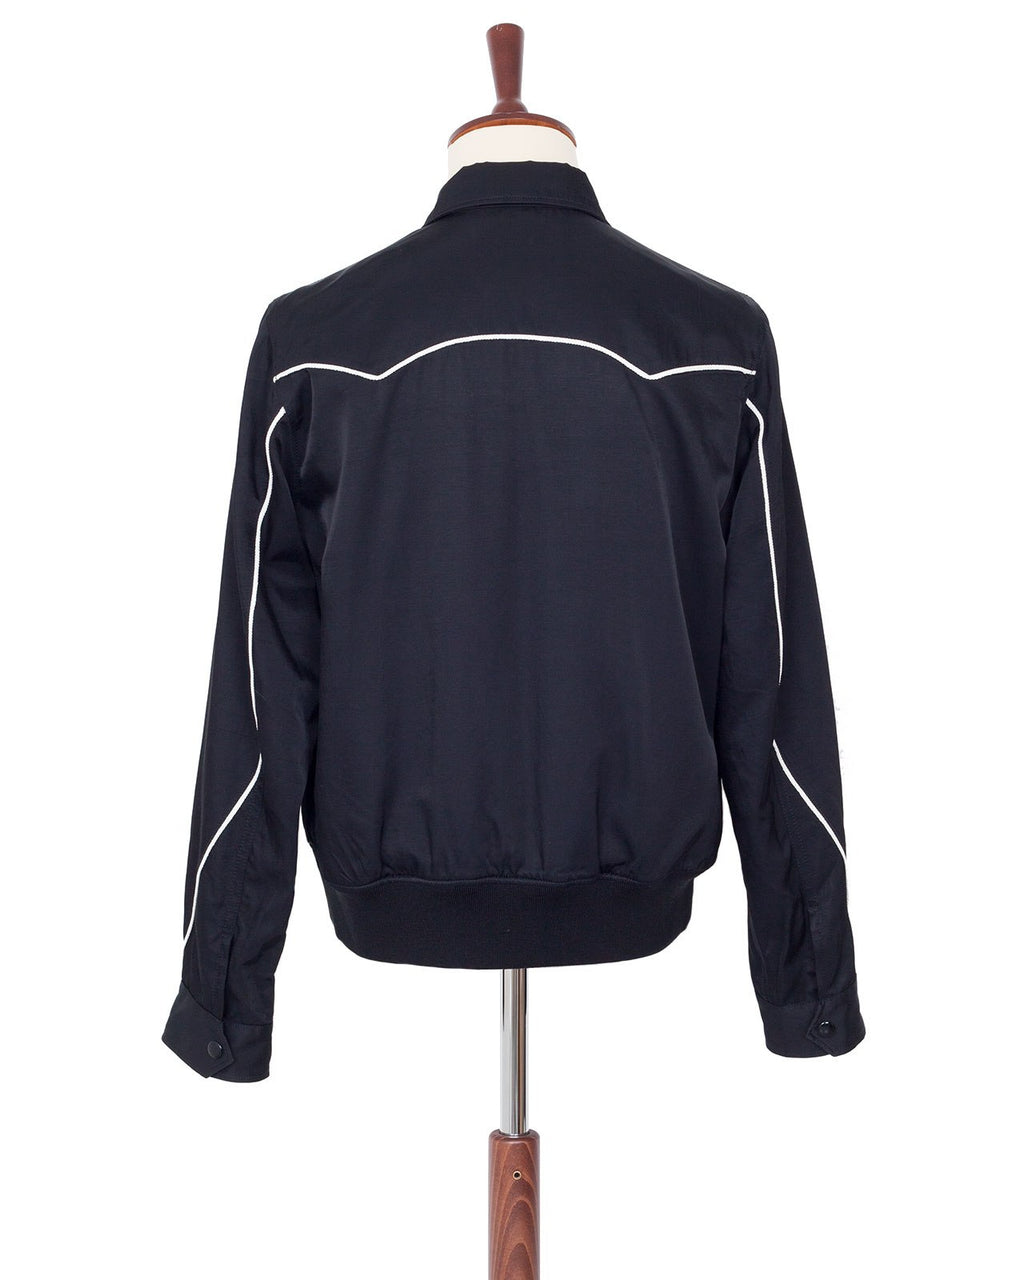 The Letters Western Sport Jacket, Rayon Cotton Twill